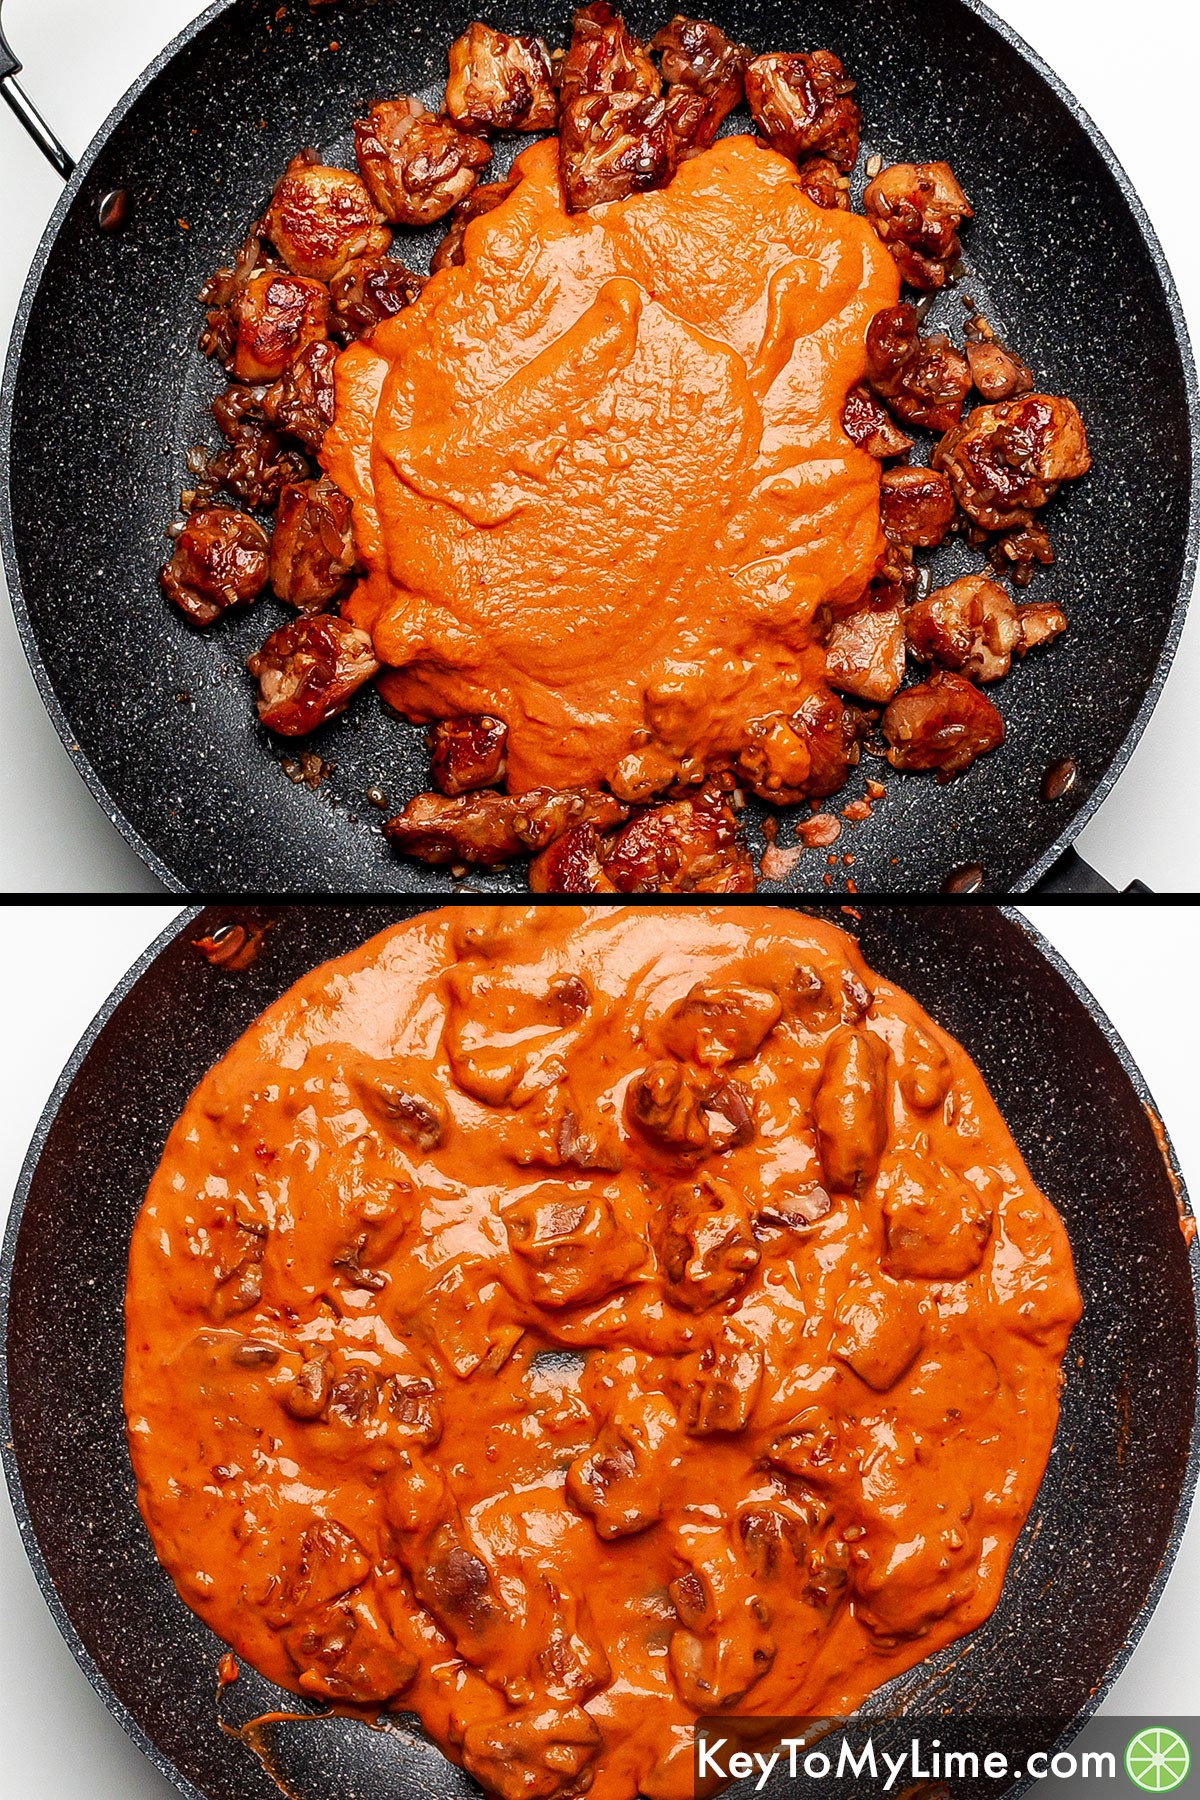 A process collage showing mixing peanut butter sauce with cooked chicken pieces.